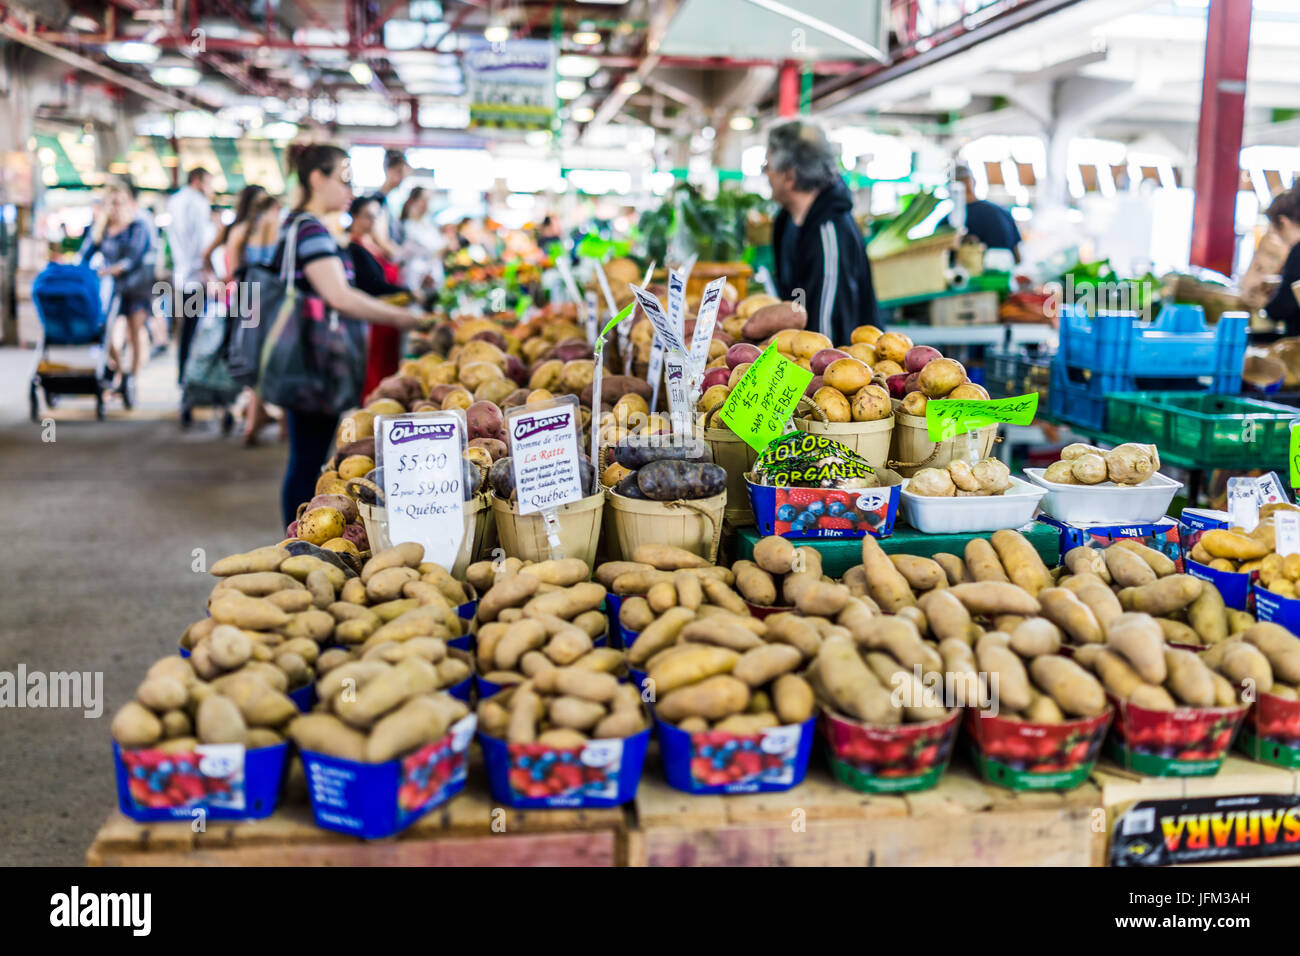 Montreal, Canada - May 28, 2017: Man selling produce by stands at Jean-Talon farmers market with displays - Stock Image